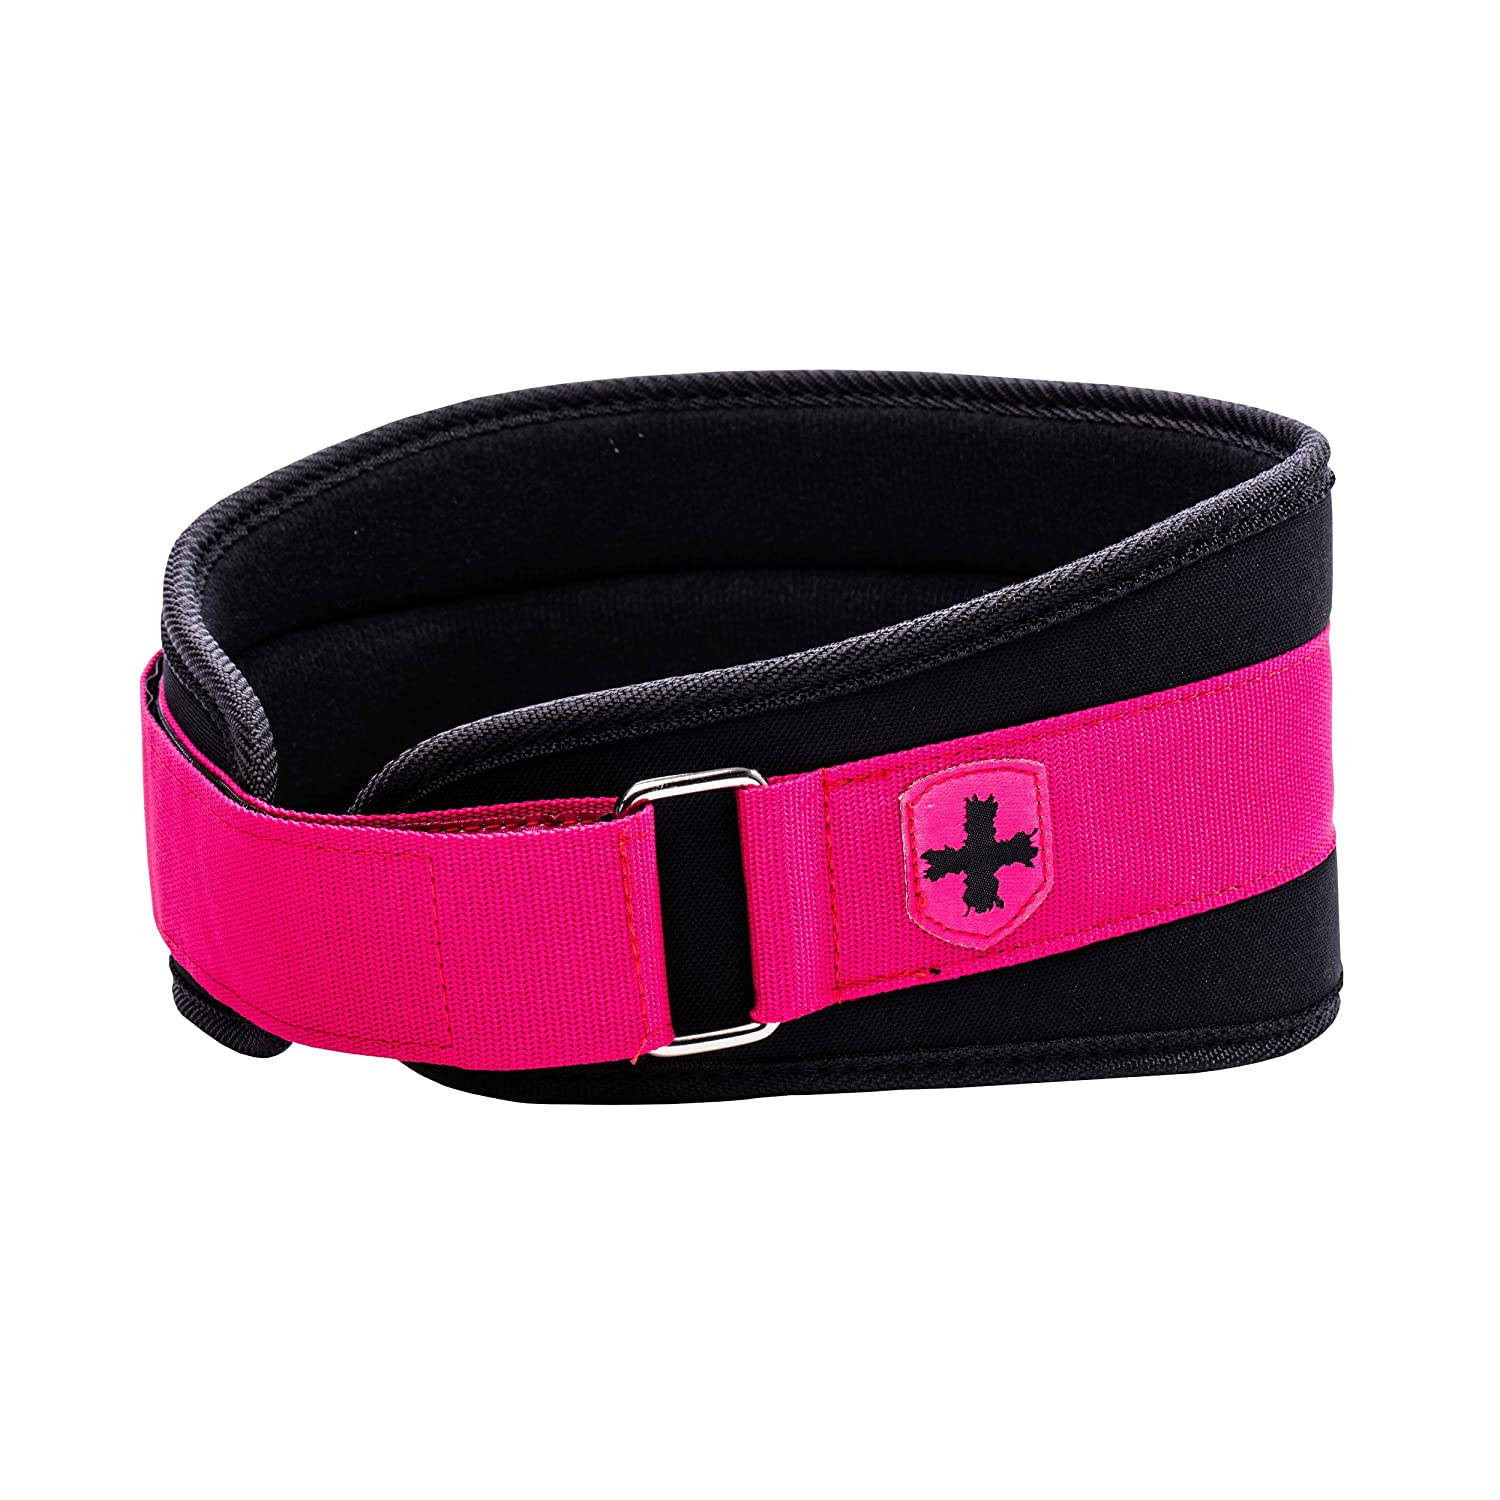 Harbinger 5 Foam Core Women's Lifting Belt